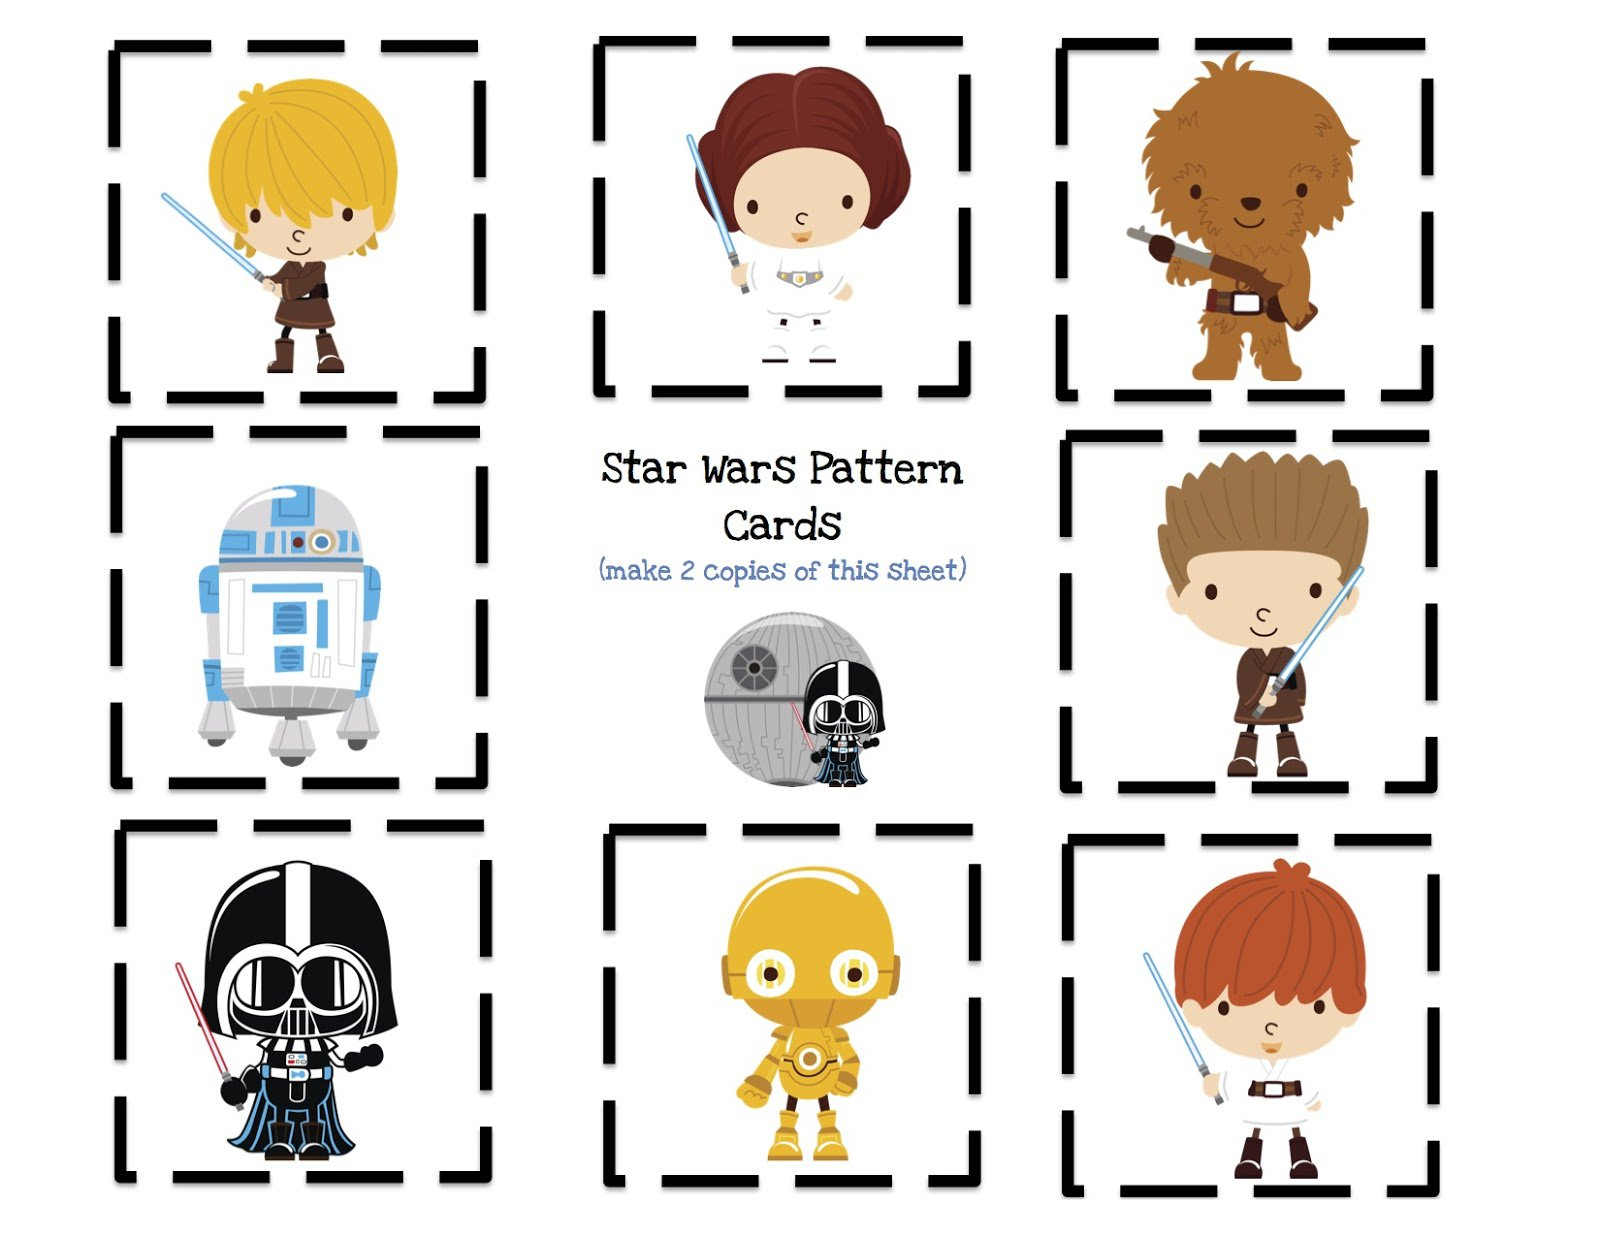 Lego Star Wars Printable Birthday Cards